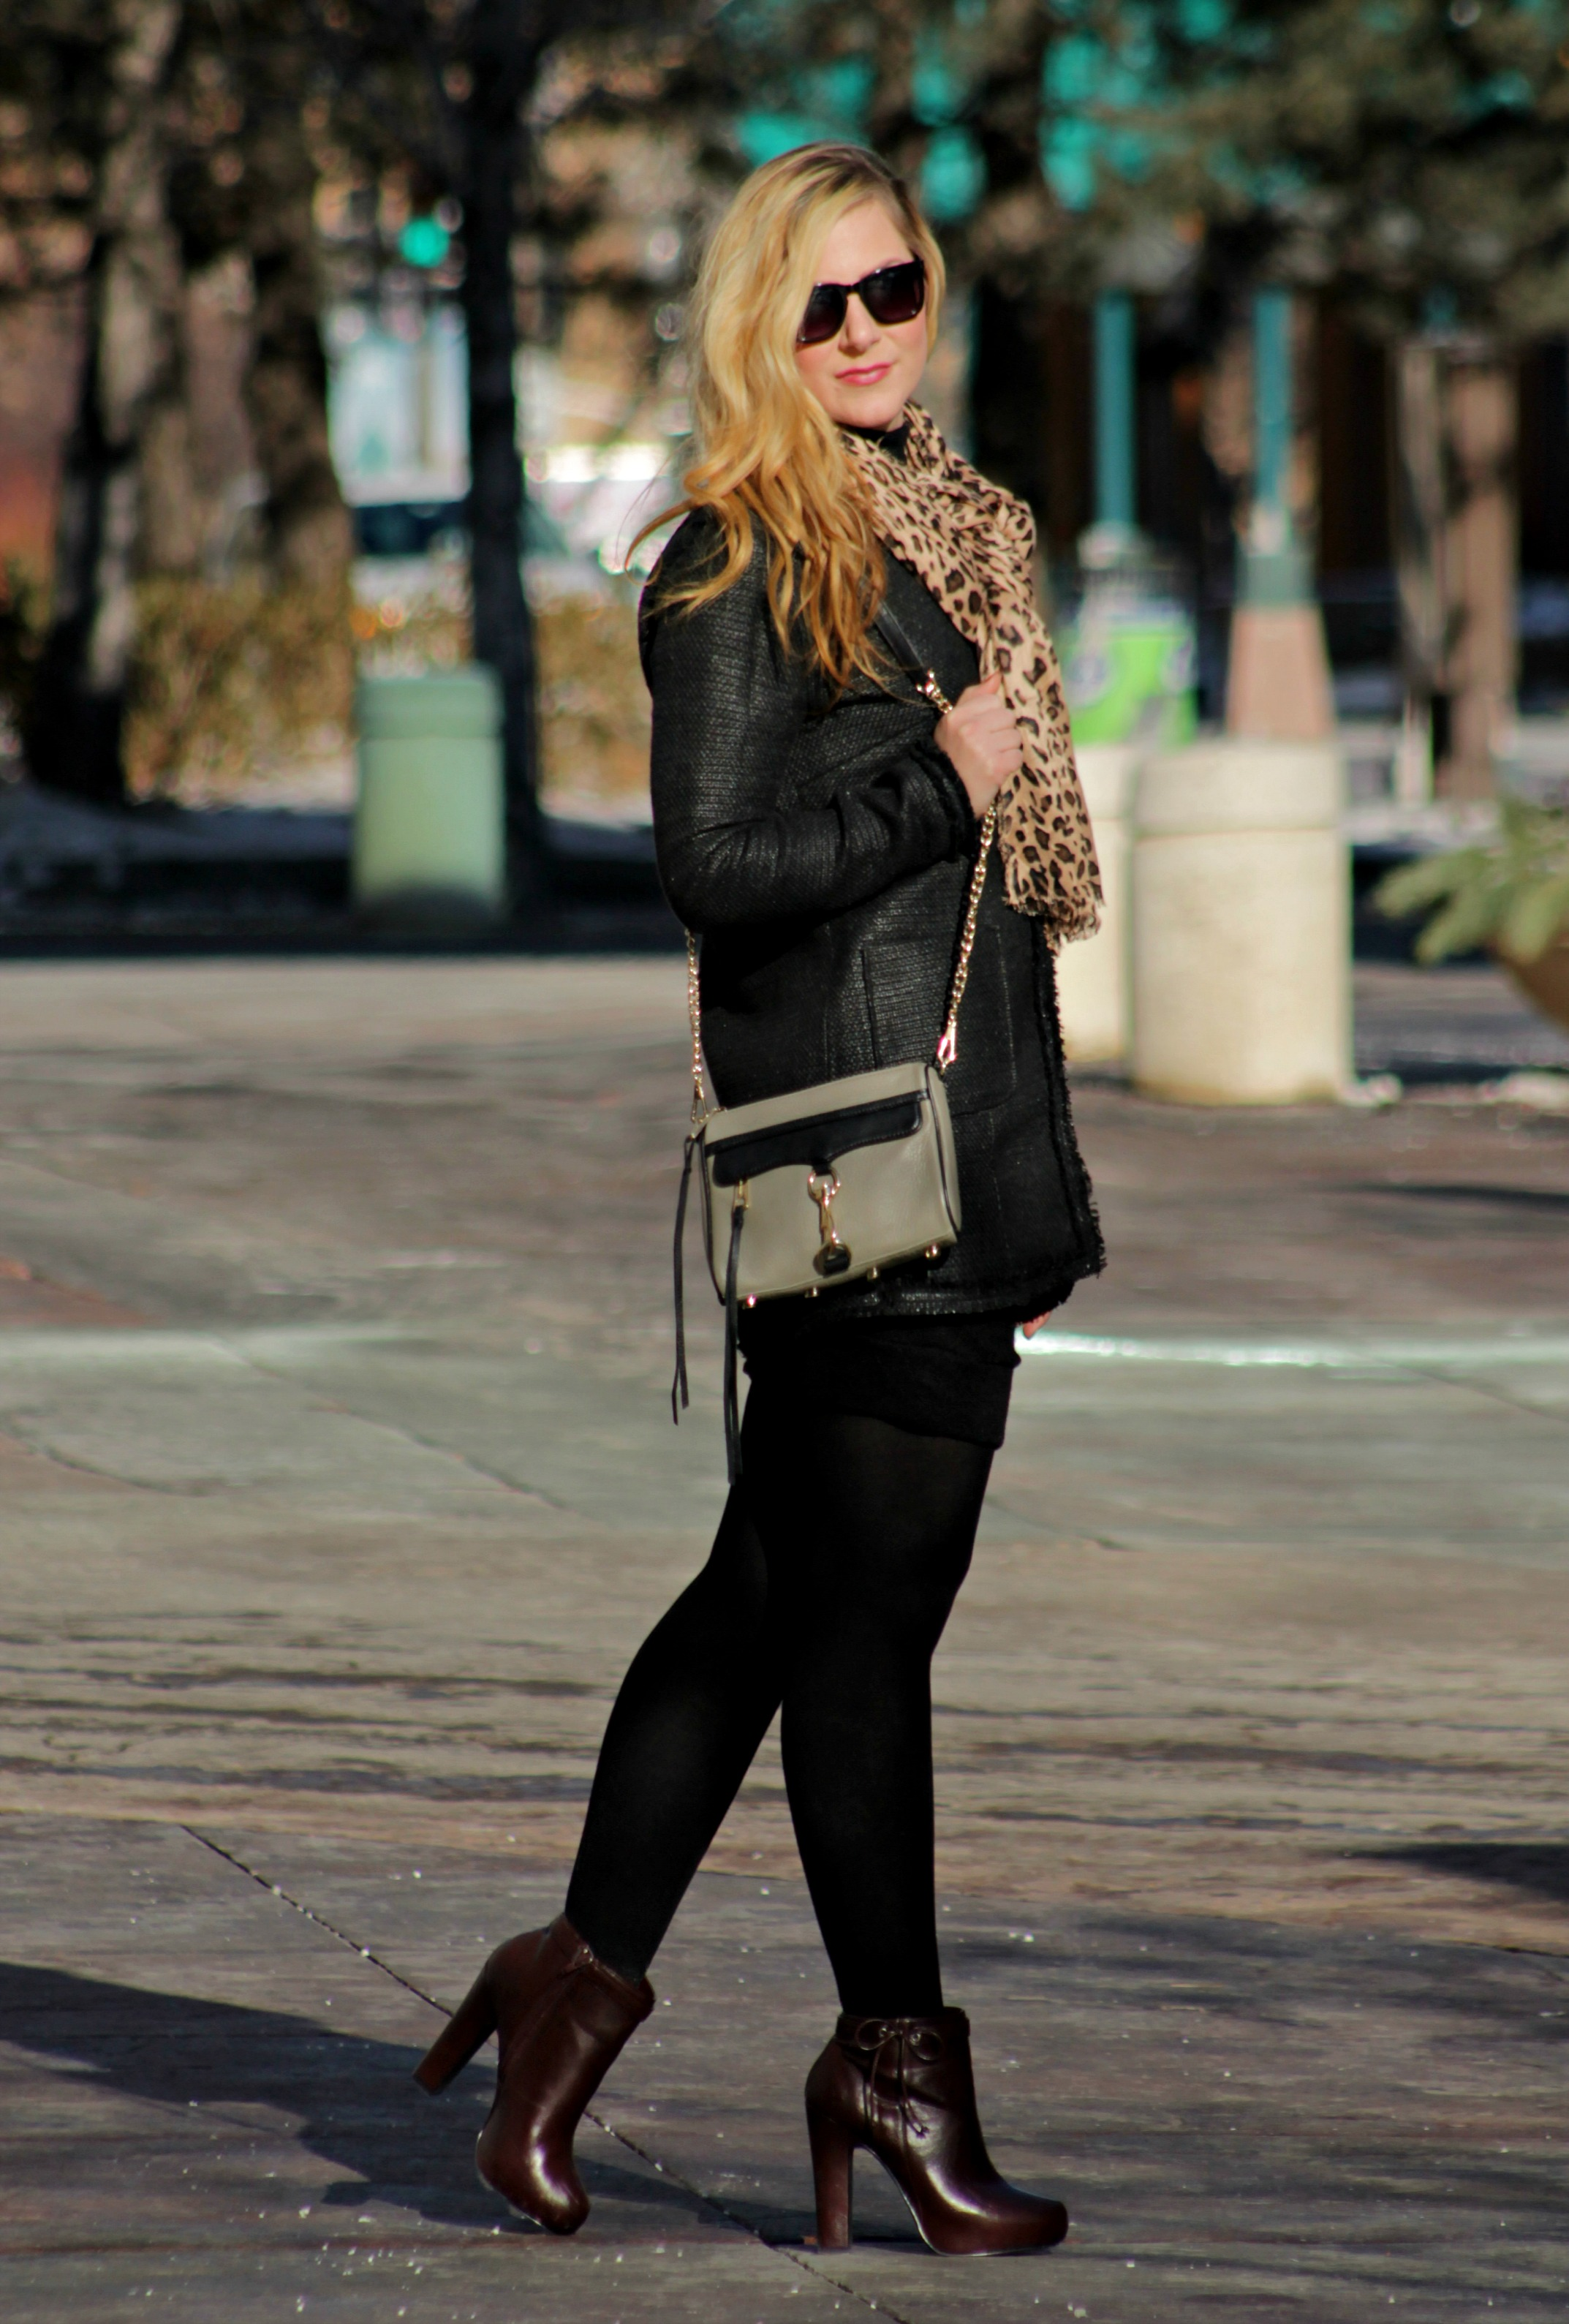 black jacket, leopard scarf, black tights and booties